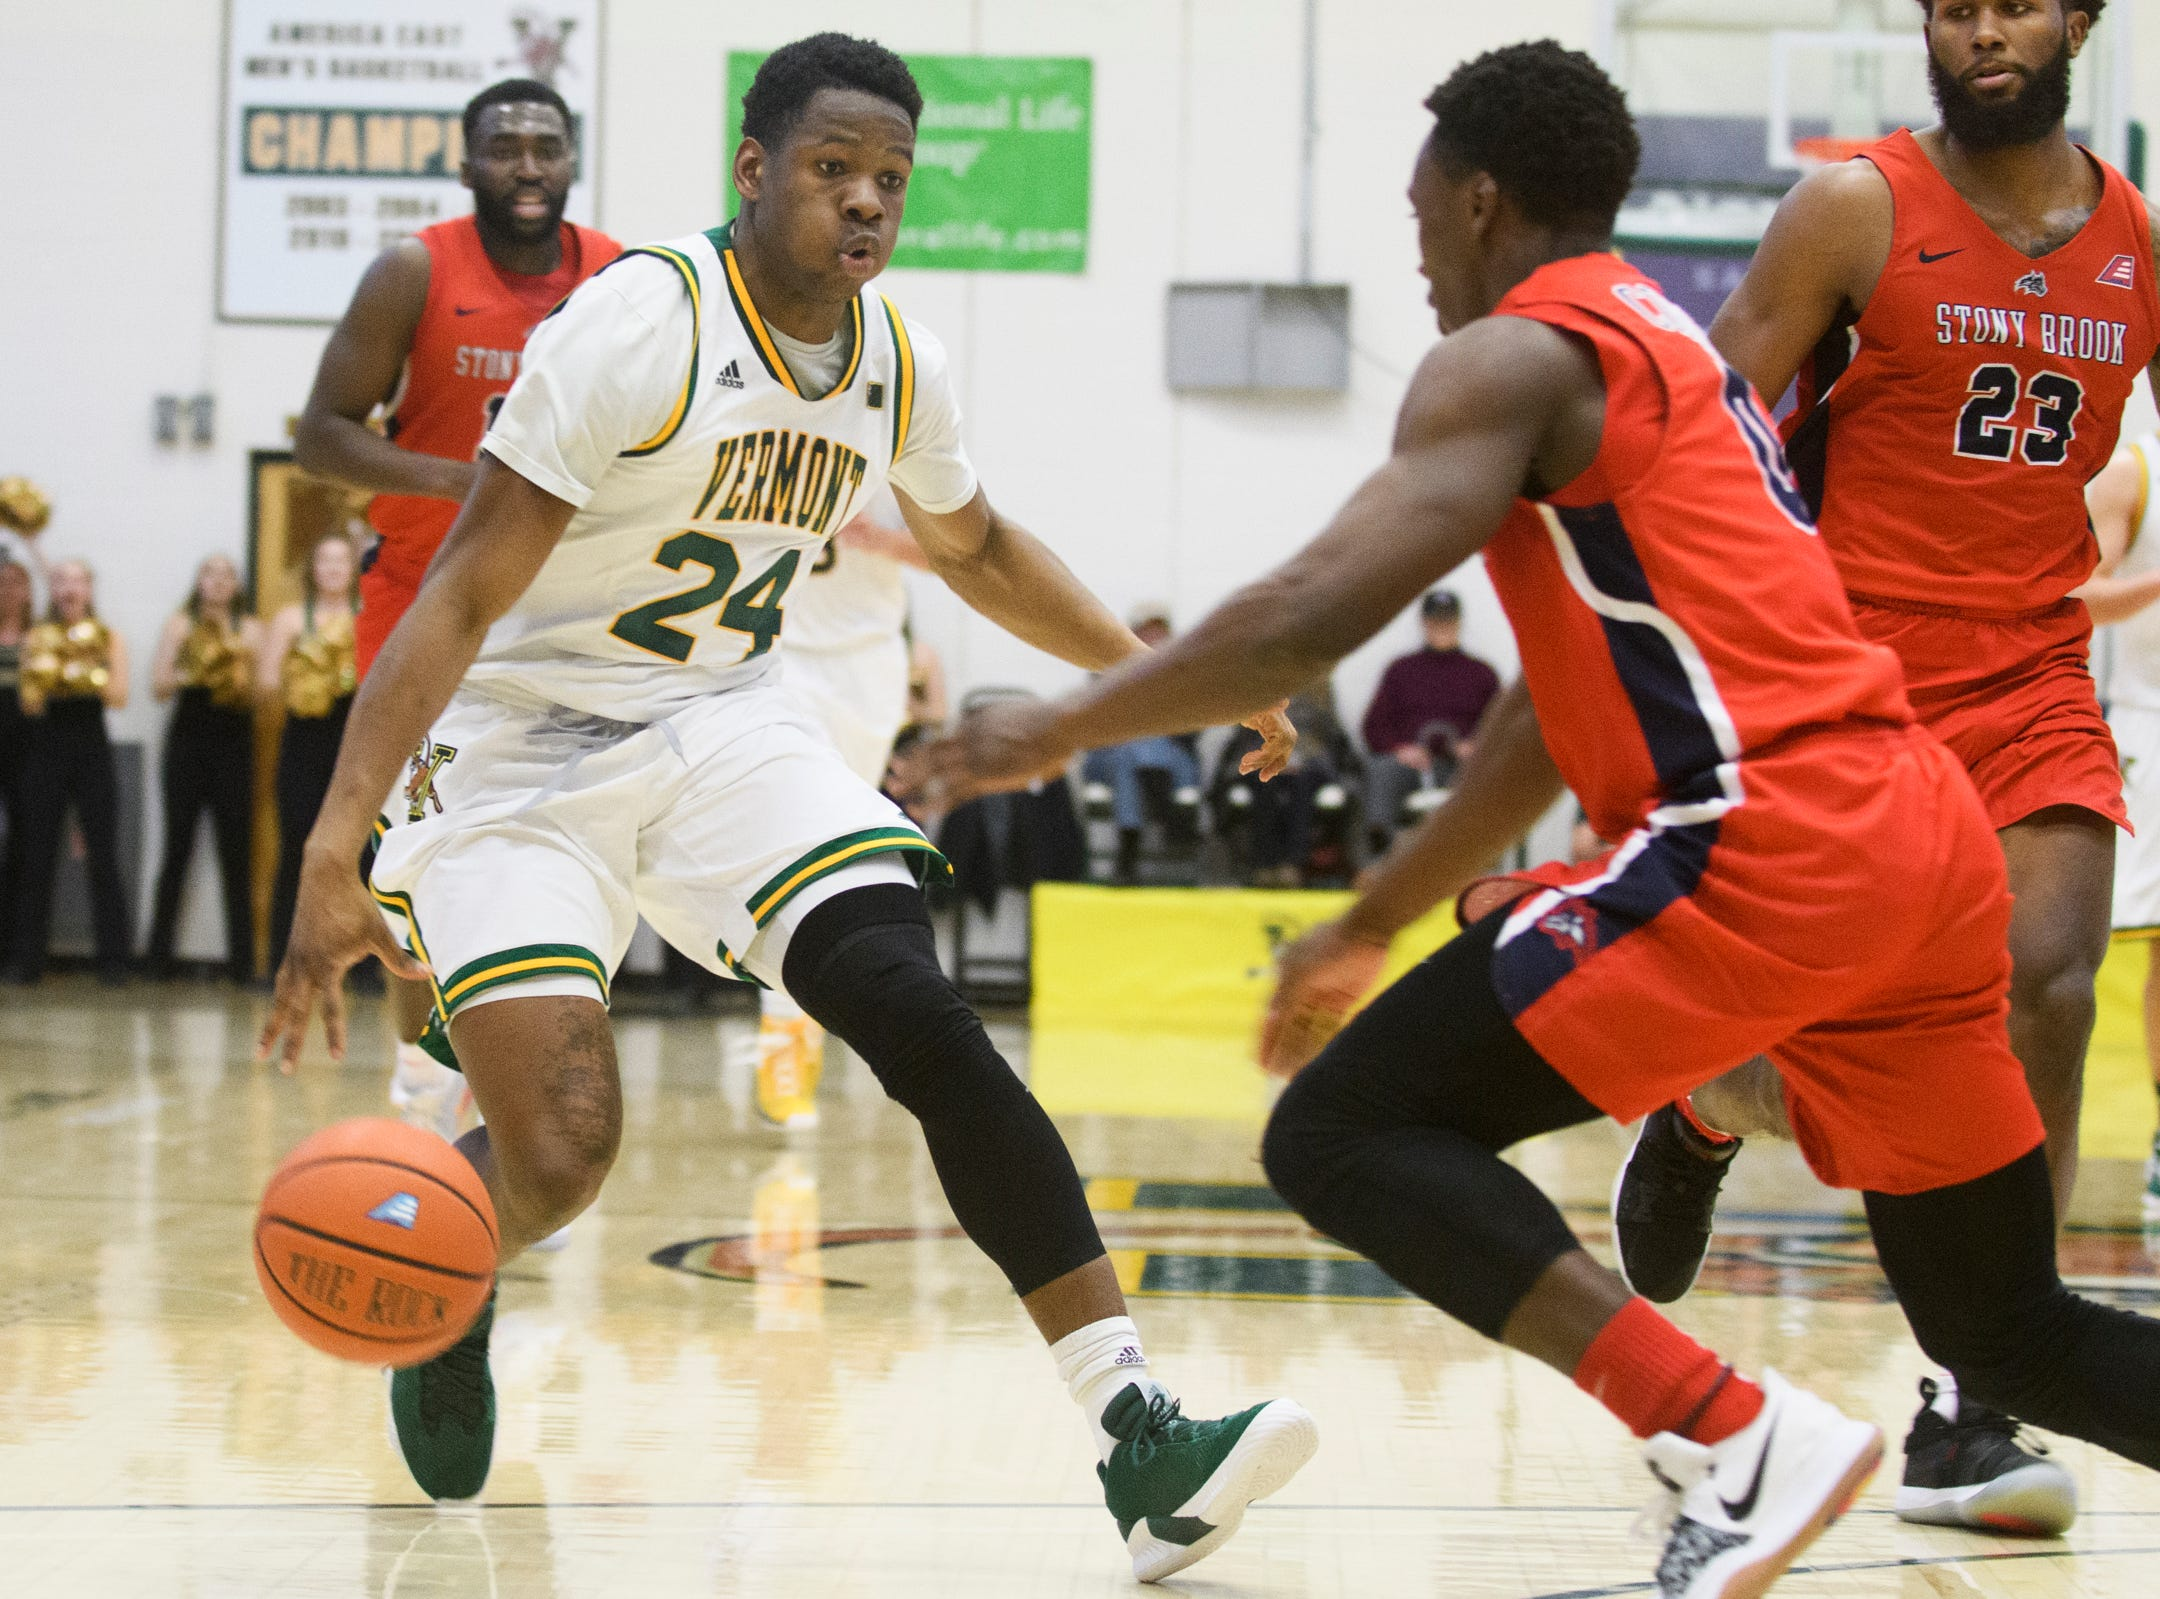 Vermont guard Ben Shungu (24) drives to the hoop during the men's basketball game between the Stony Brook Seawolves and the Vermont Catamounts at Patrick Gym on Saturday night March 2, 2019 in Burlington, Vermont.